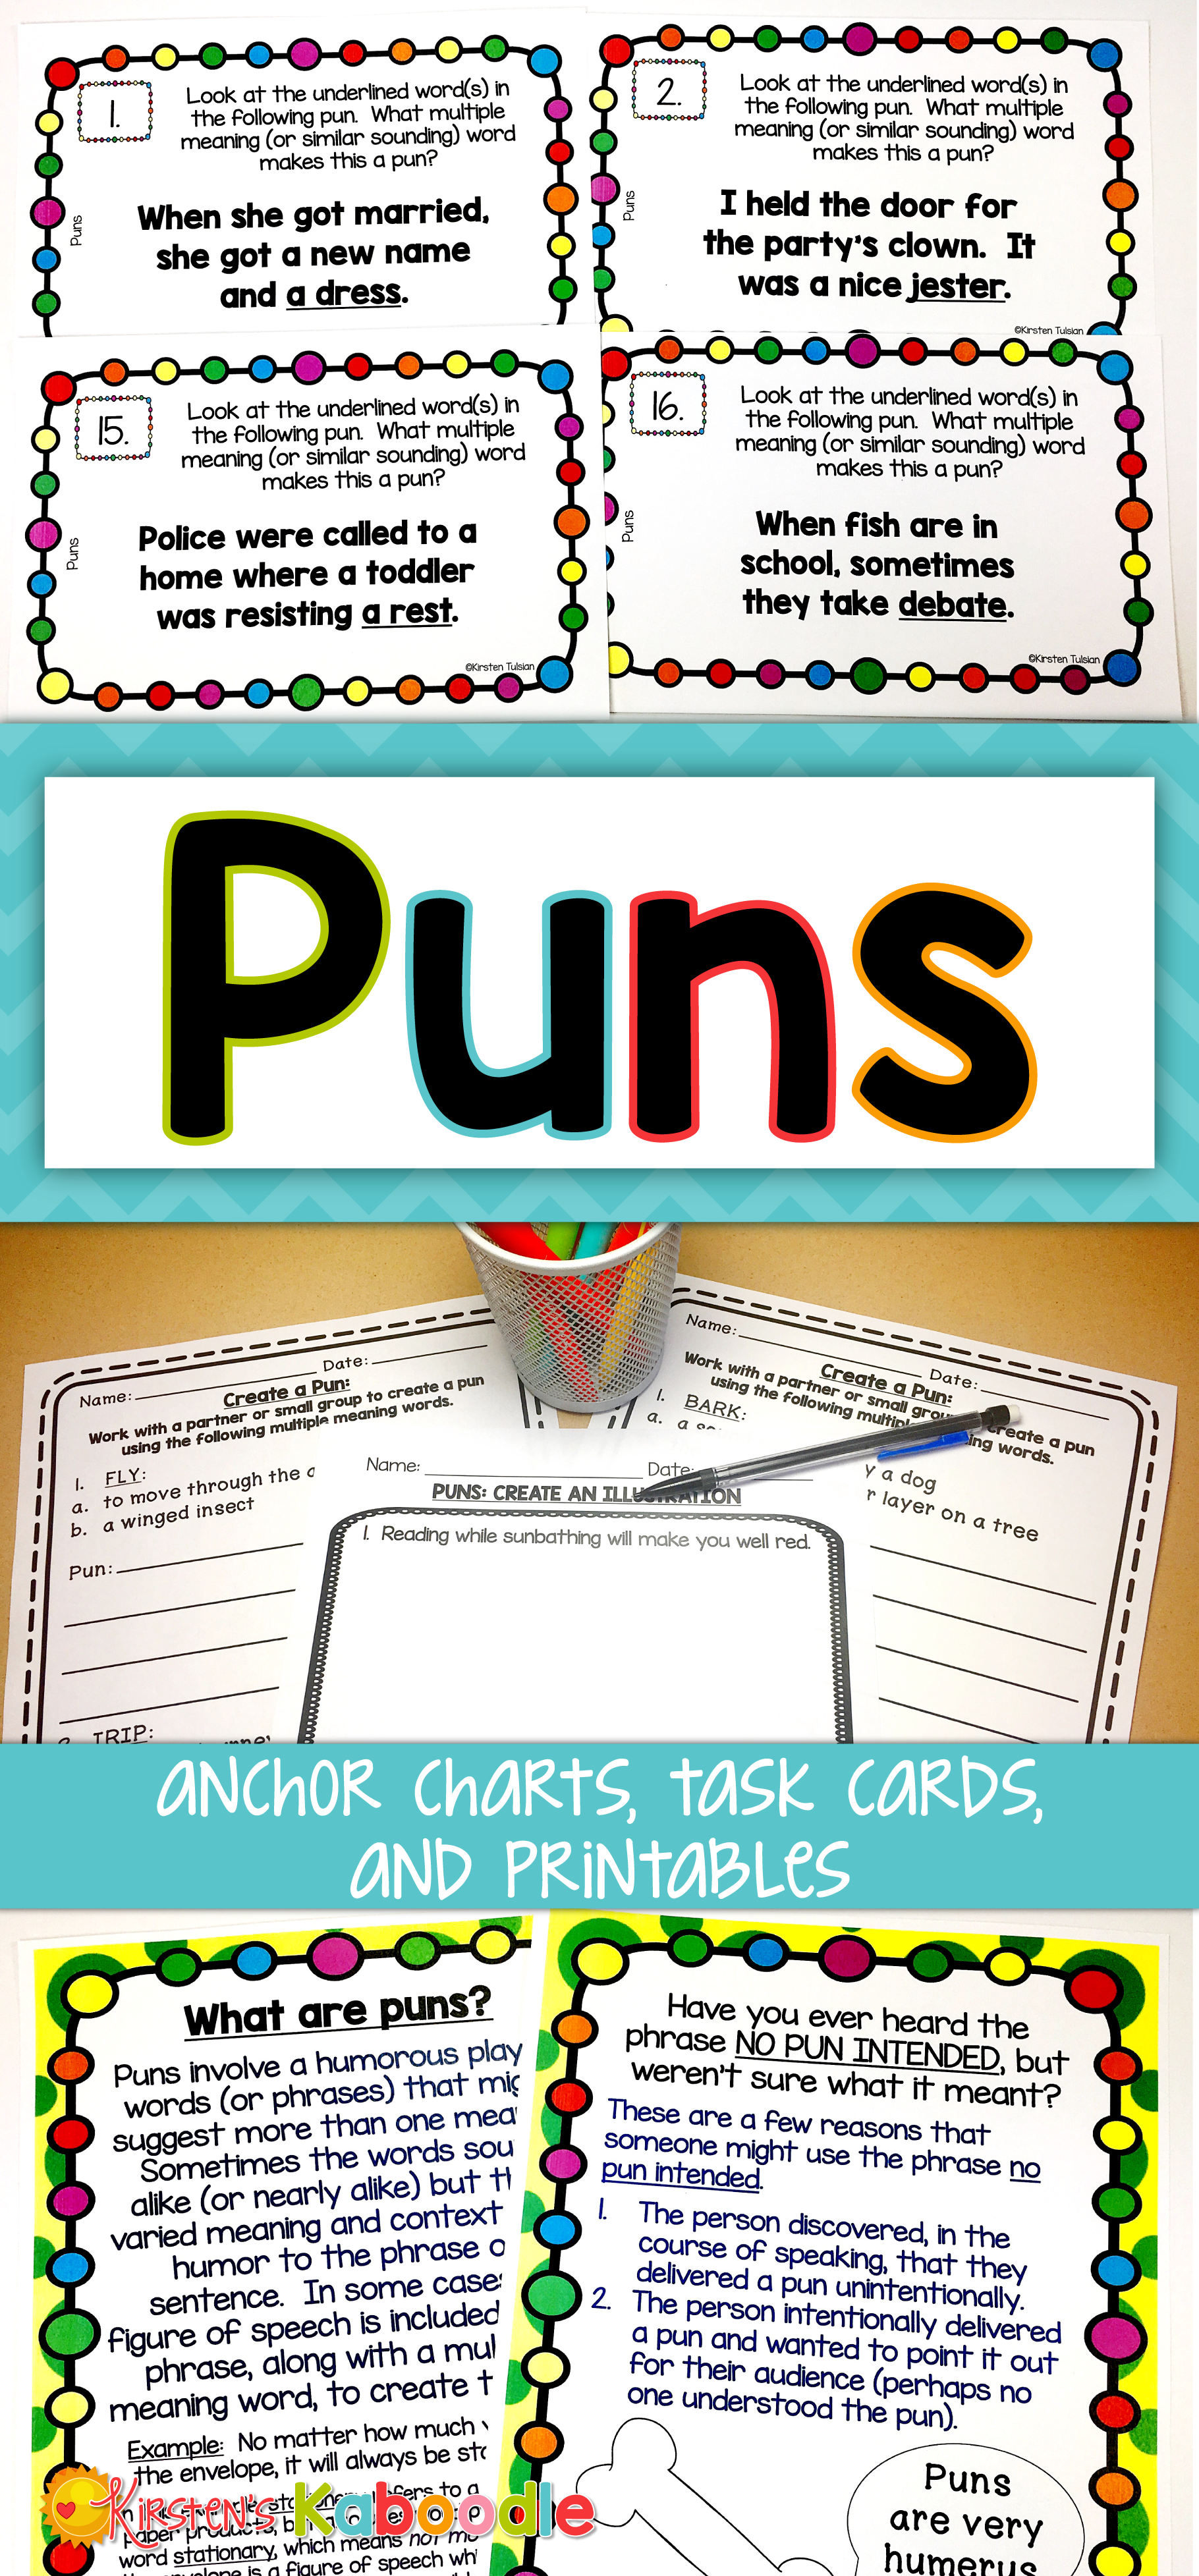 Puns Activities | Pinterest | Language lessons, Anchor charts and ...